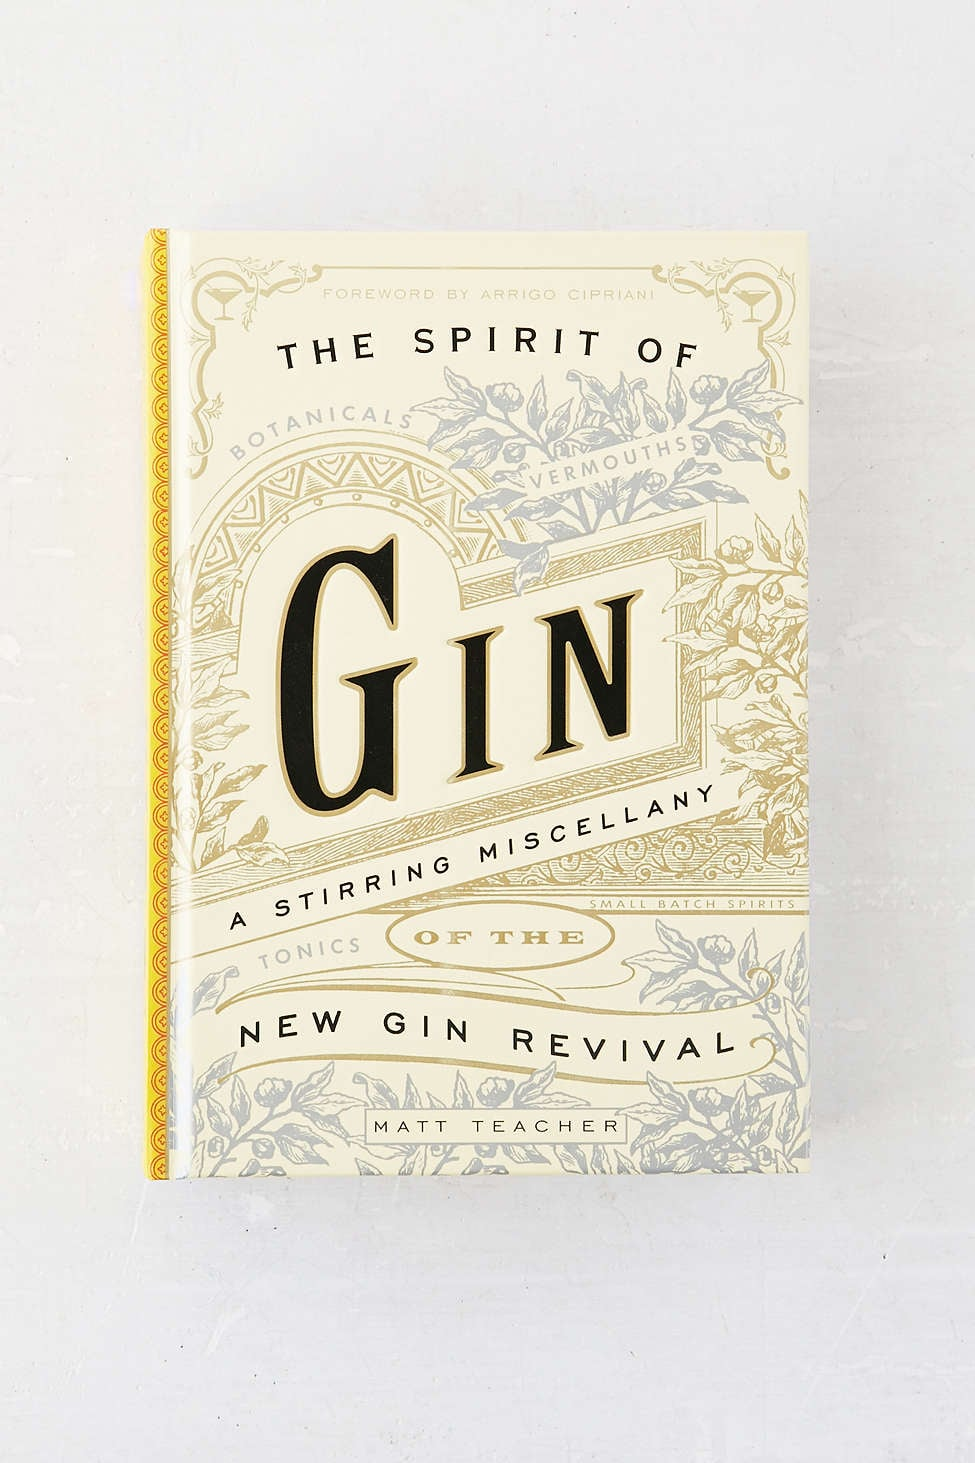 The Spirit Of Gin: A Stirring Miscellany Of The New Gin Revival